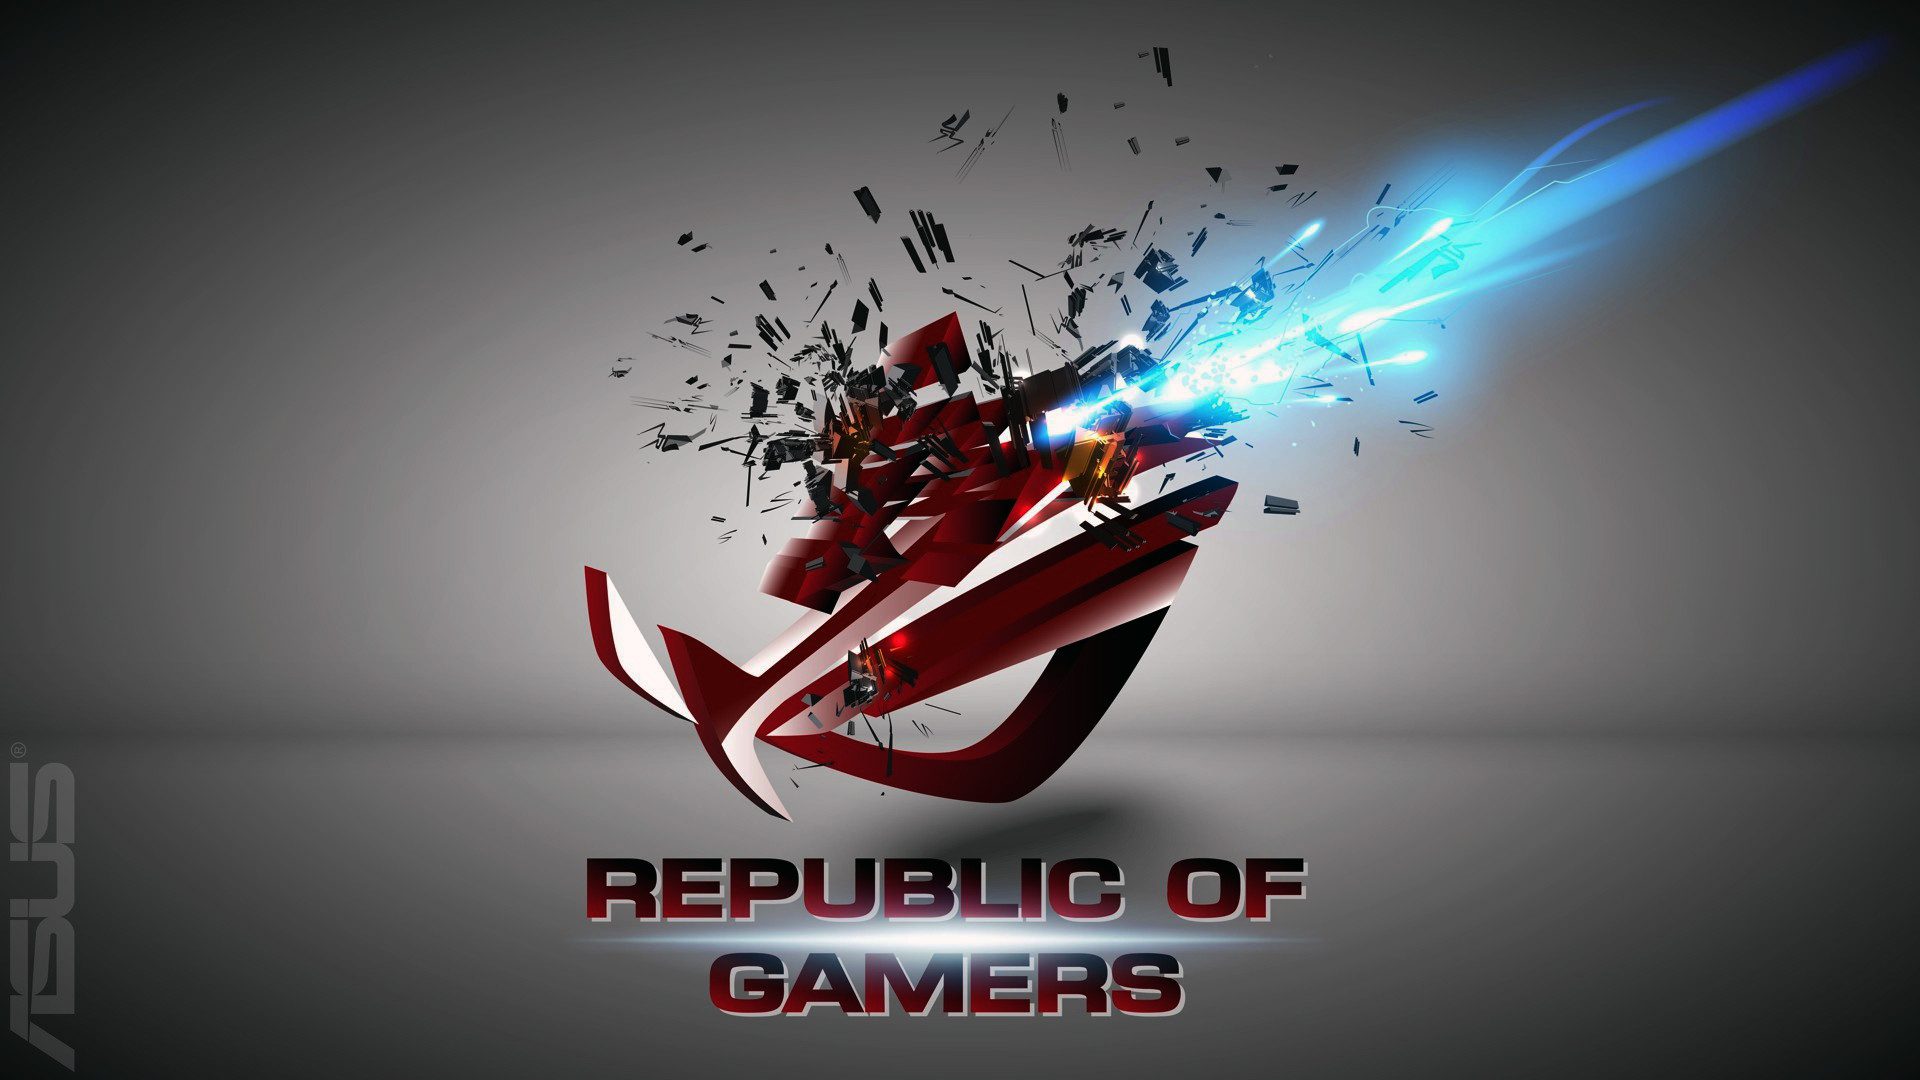 1920x1080 asus rog (republic of gamers) logo shattered explosion hd.  .